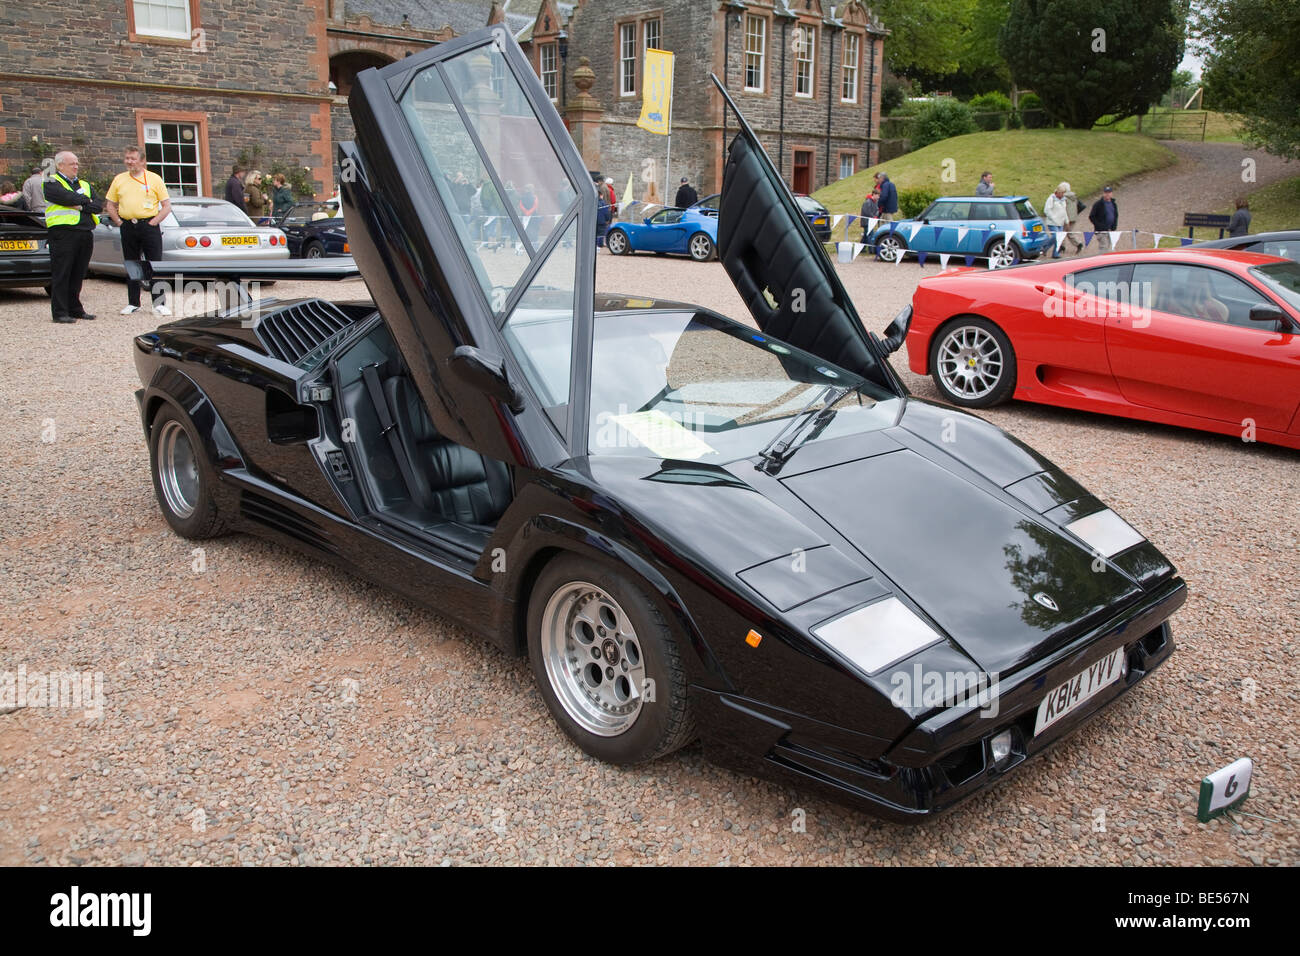 Black Lamborghini Countach mid-engined sports car - Stock Image